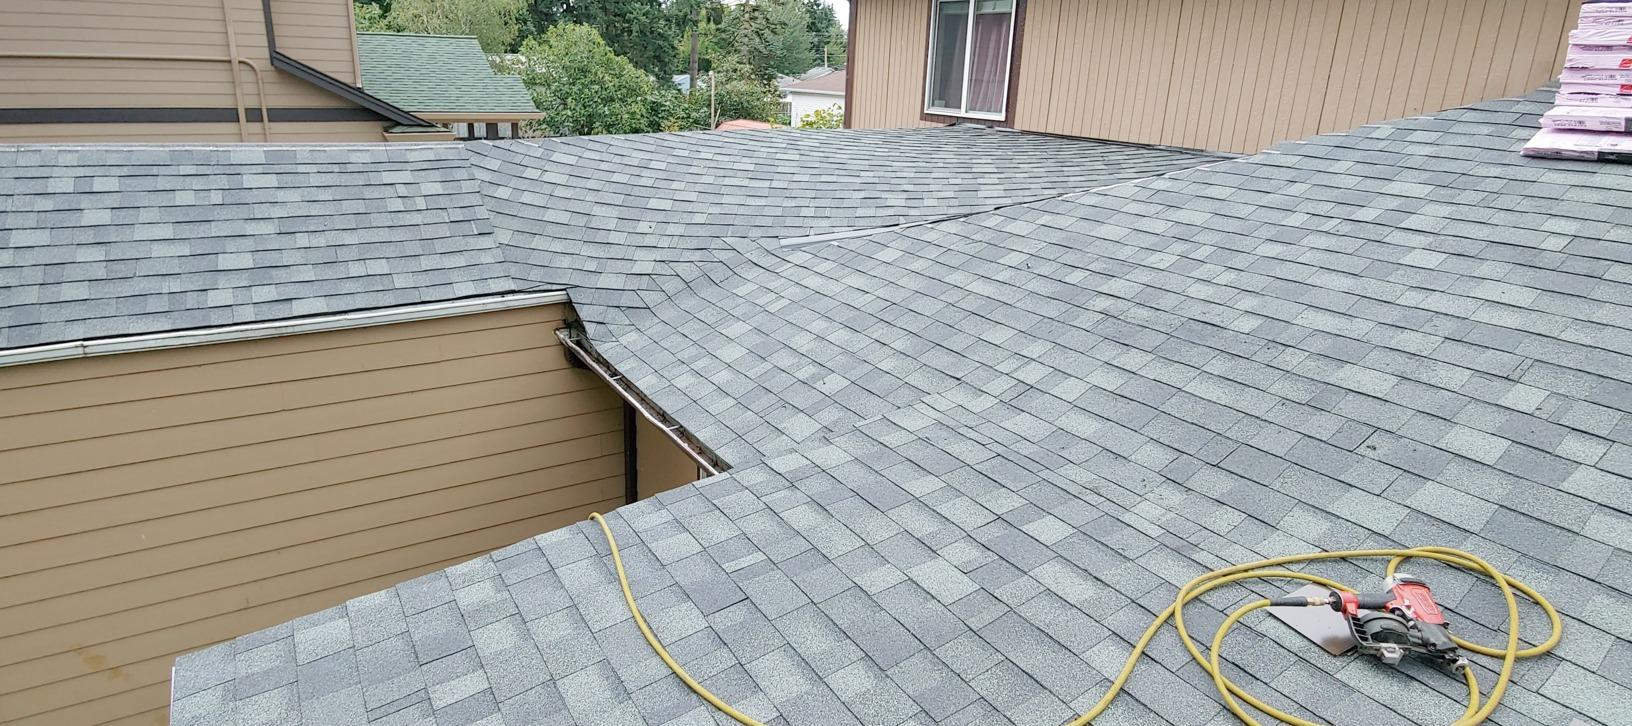 Owens Corning Roof Install in Portland, OR - After Photo